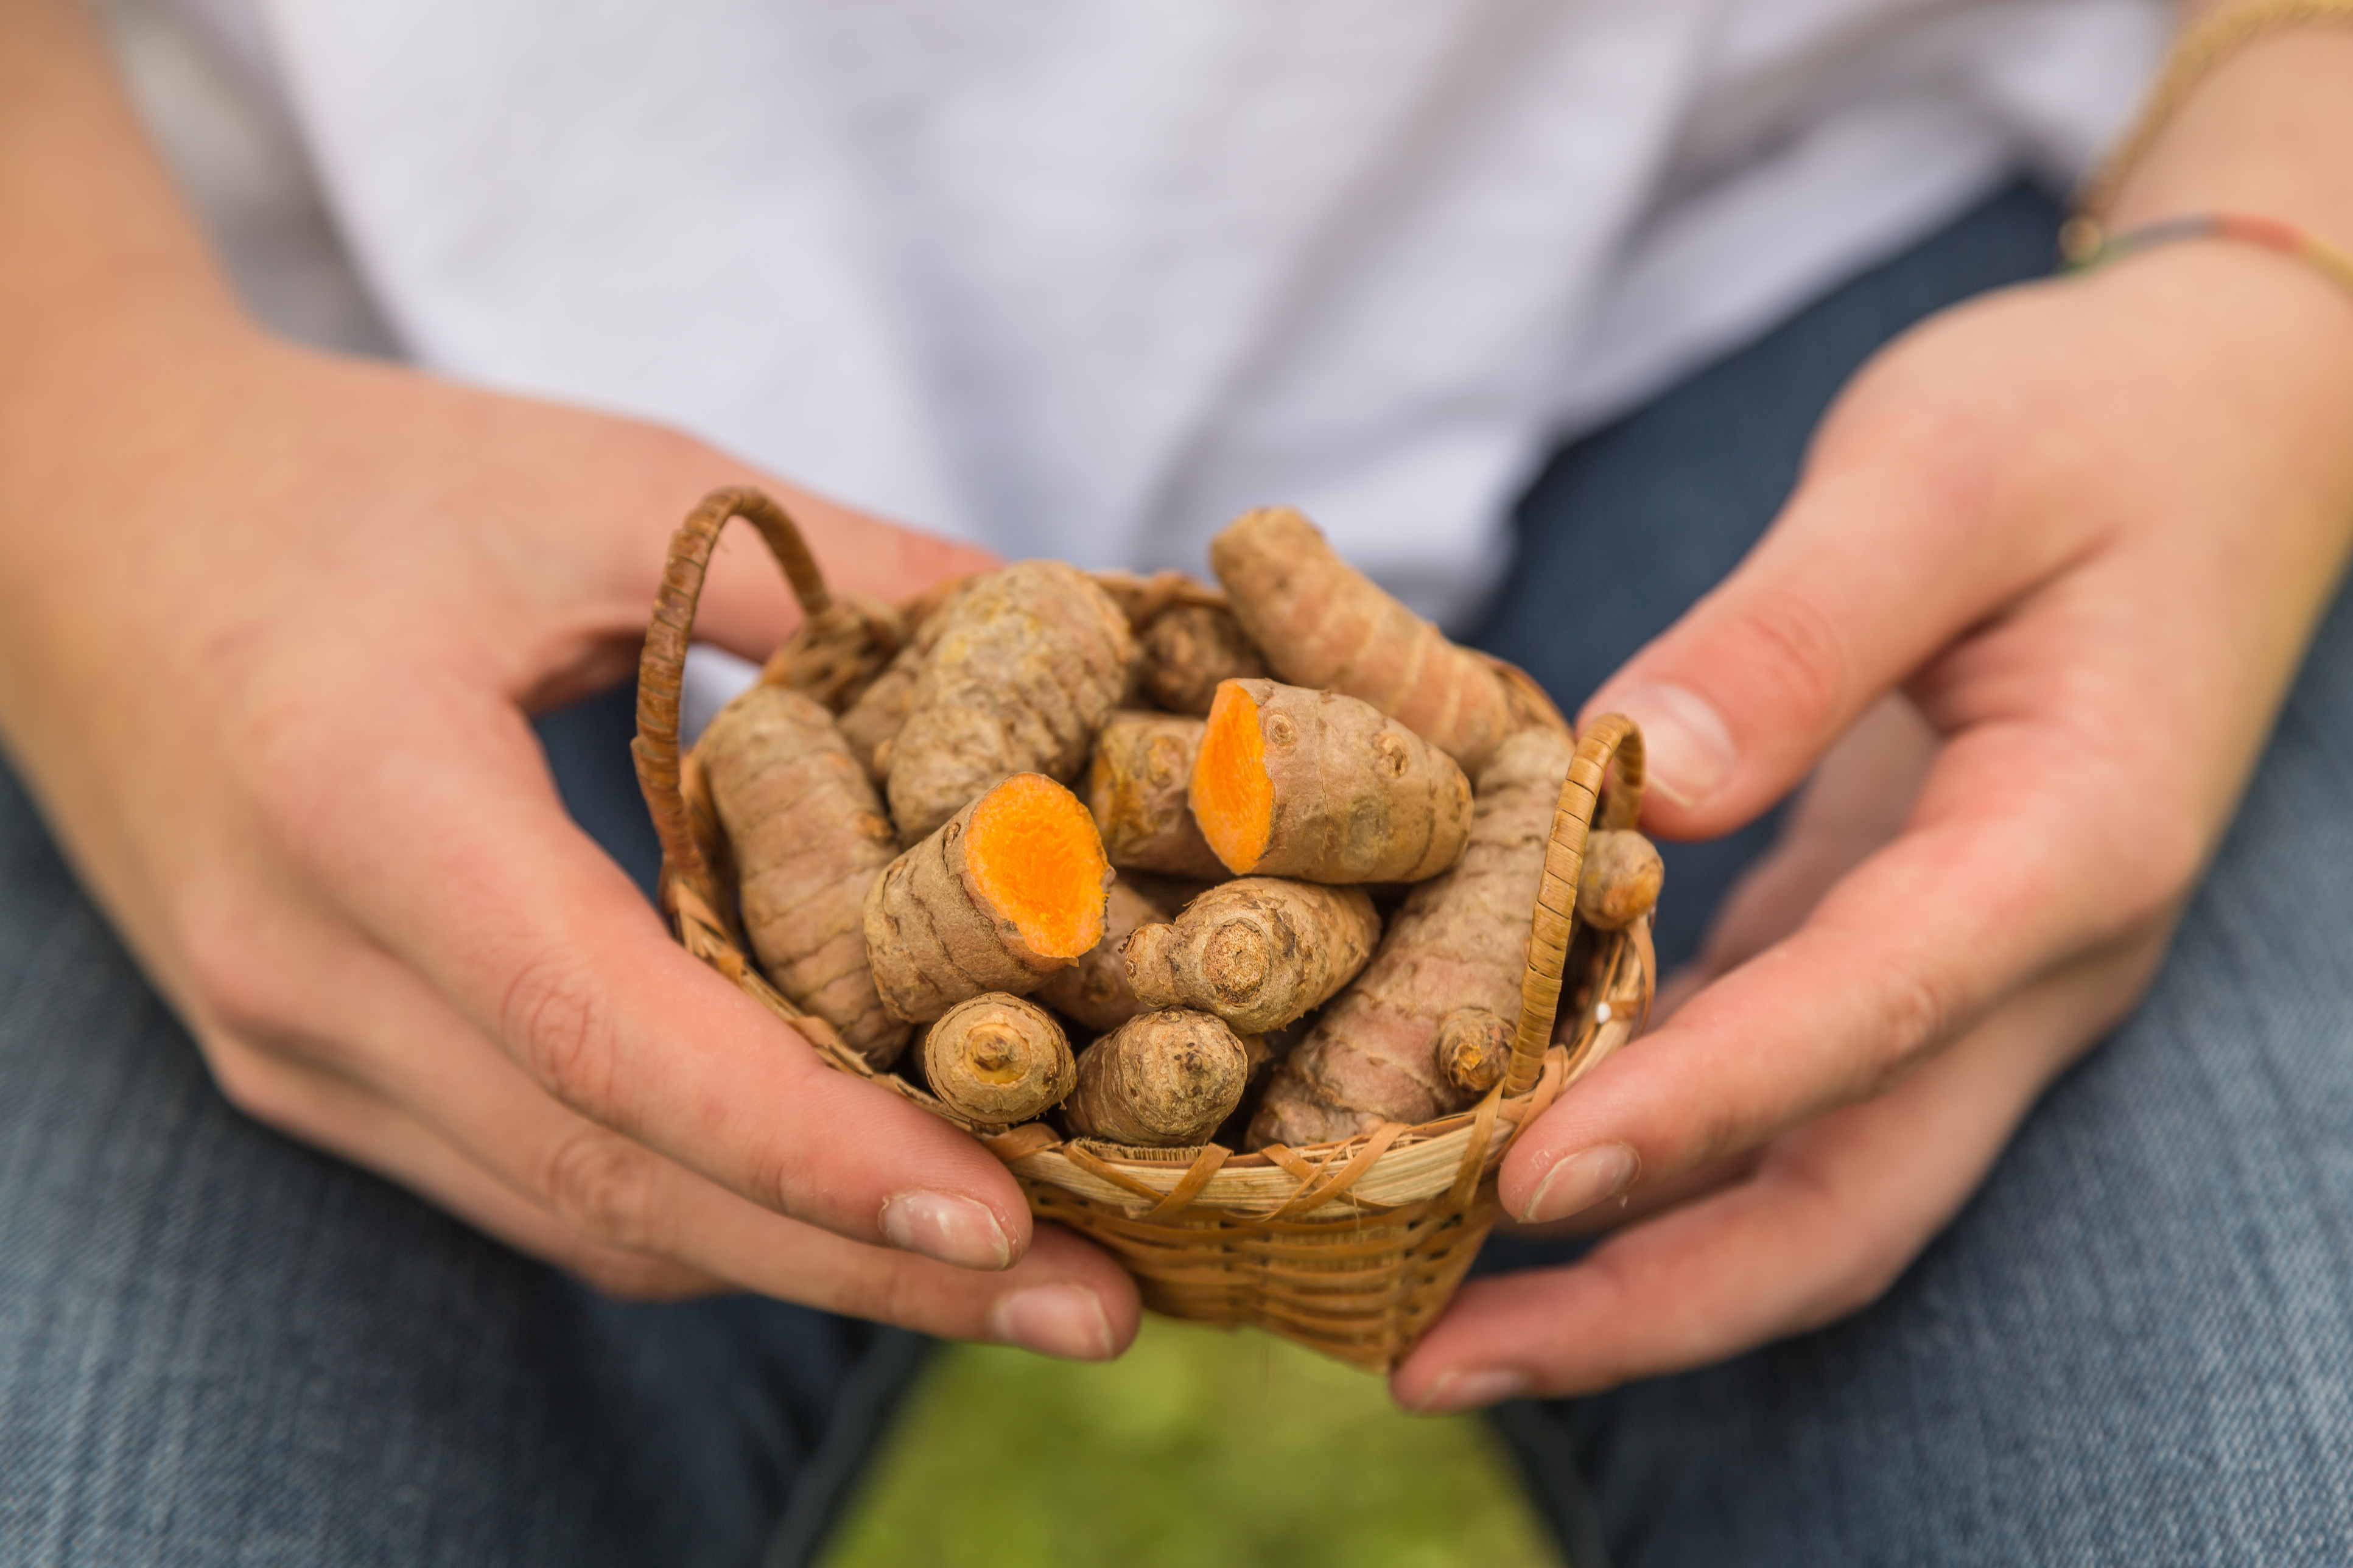 Close-up of female hands holding fresh root turmeric in a basket